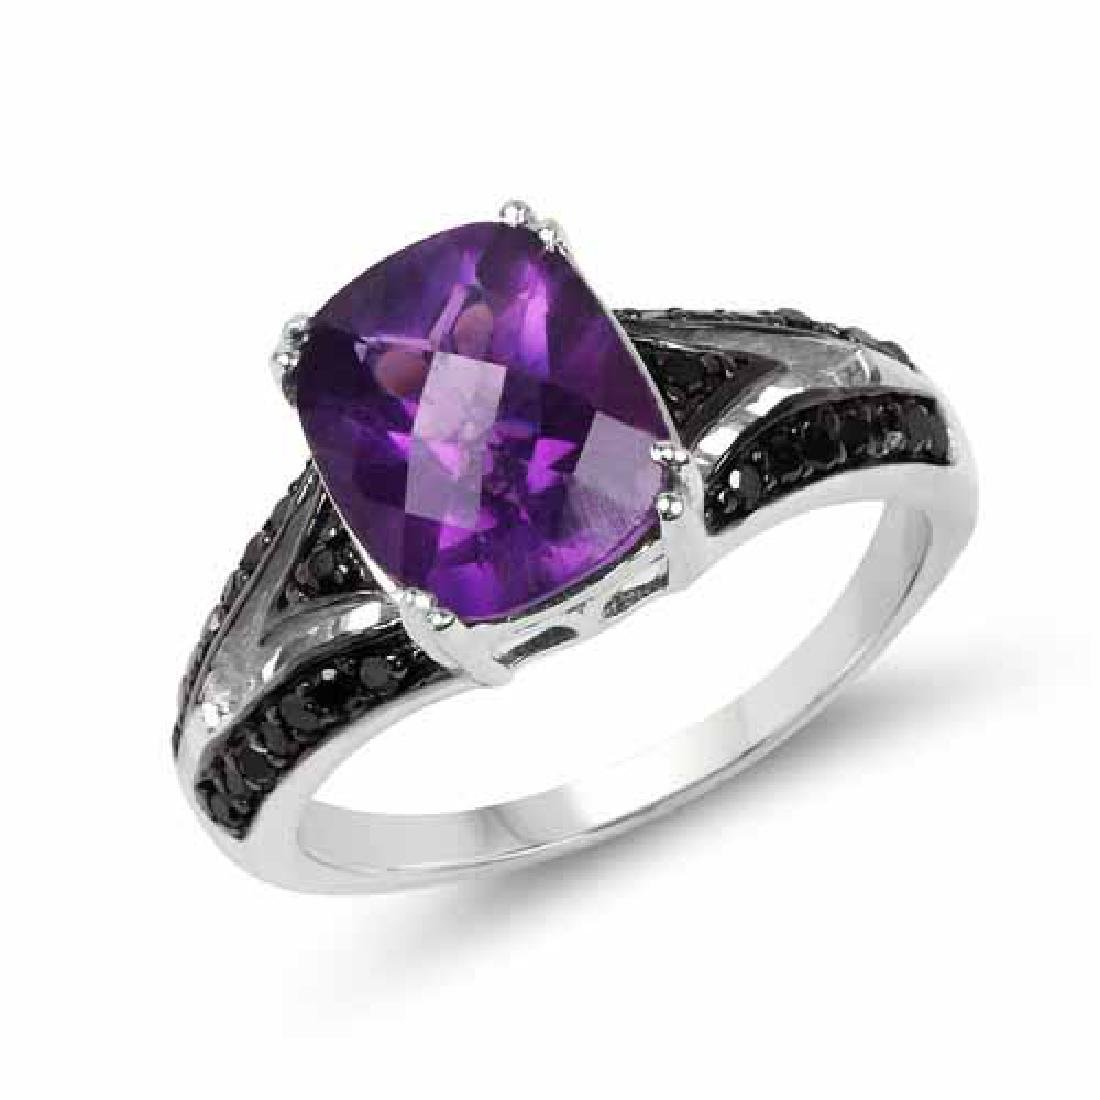 2.87 Carat Genuine Amethyst Black Diamond and White Di